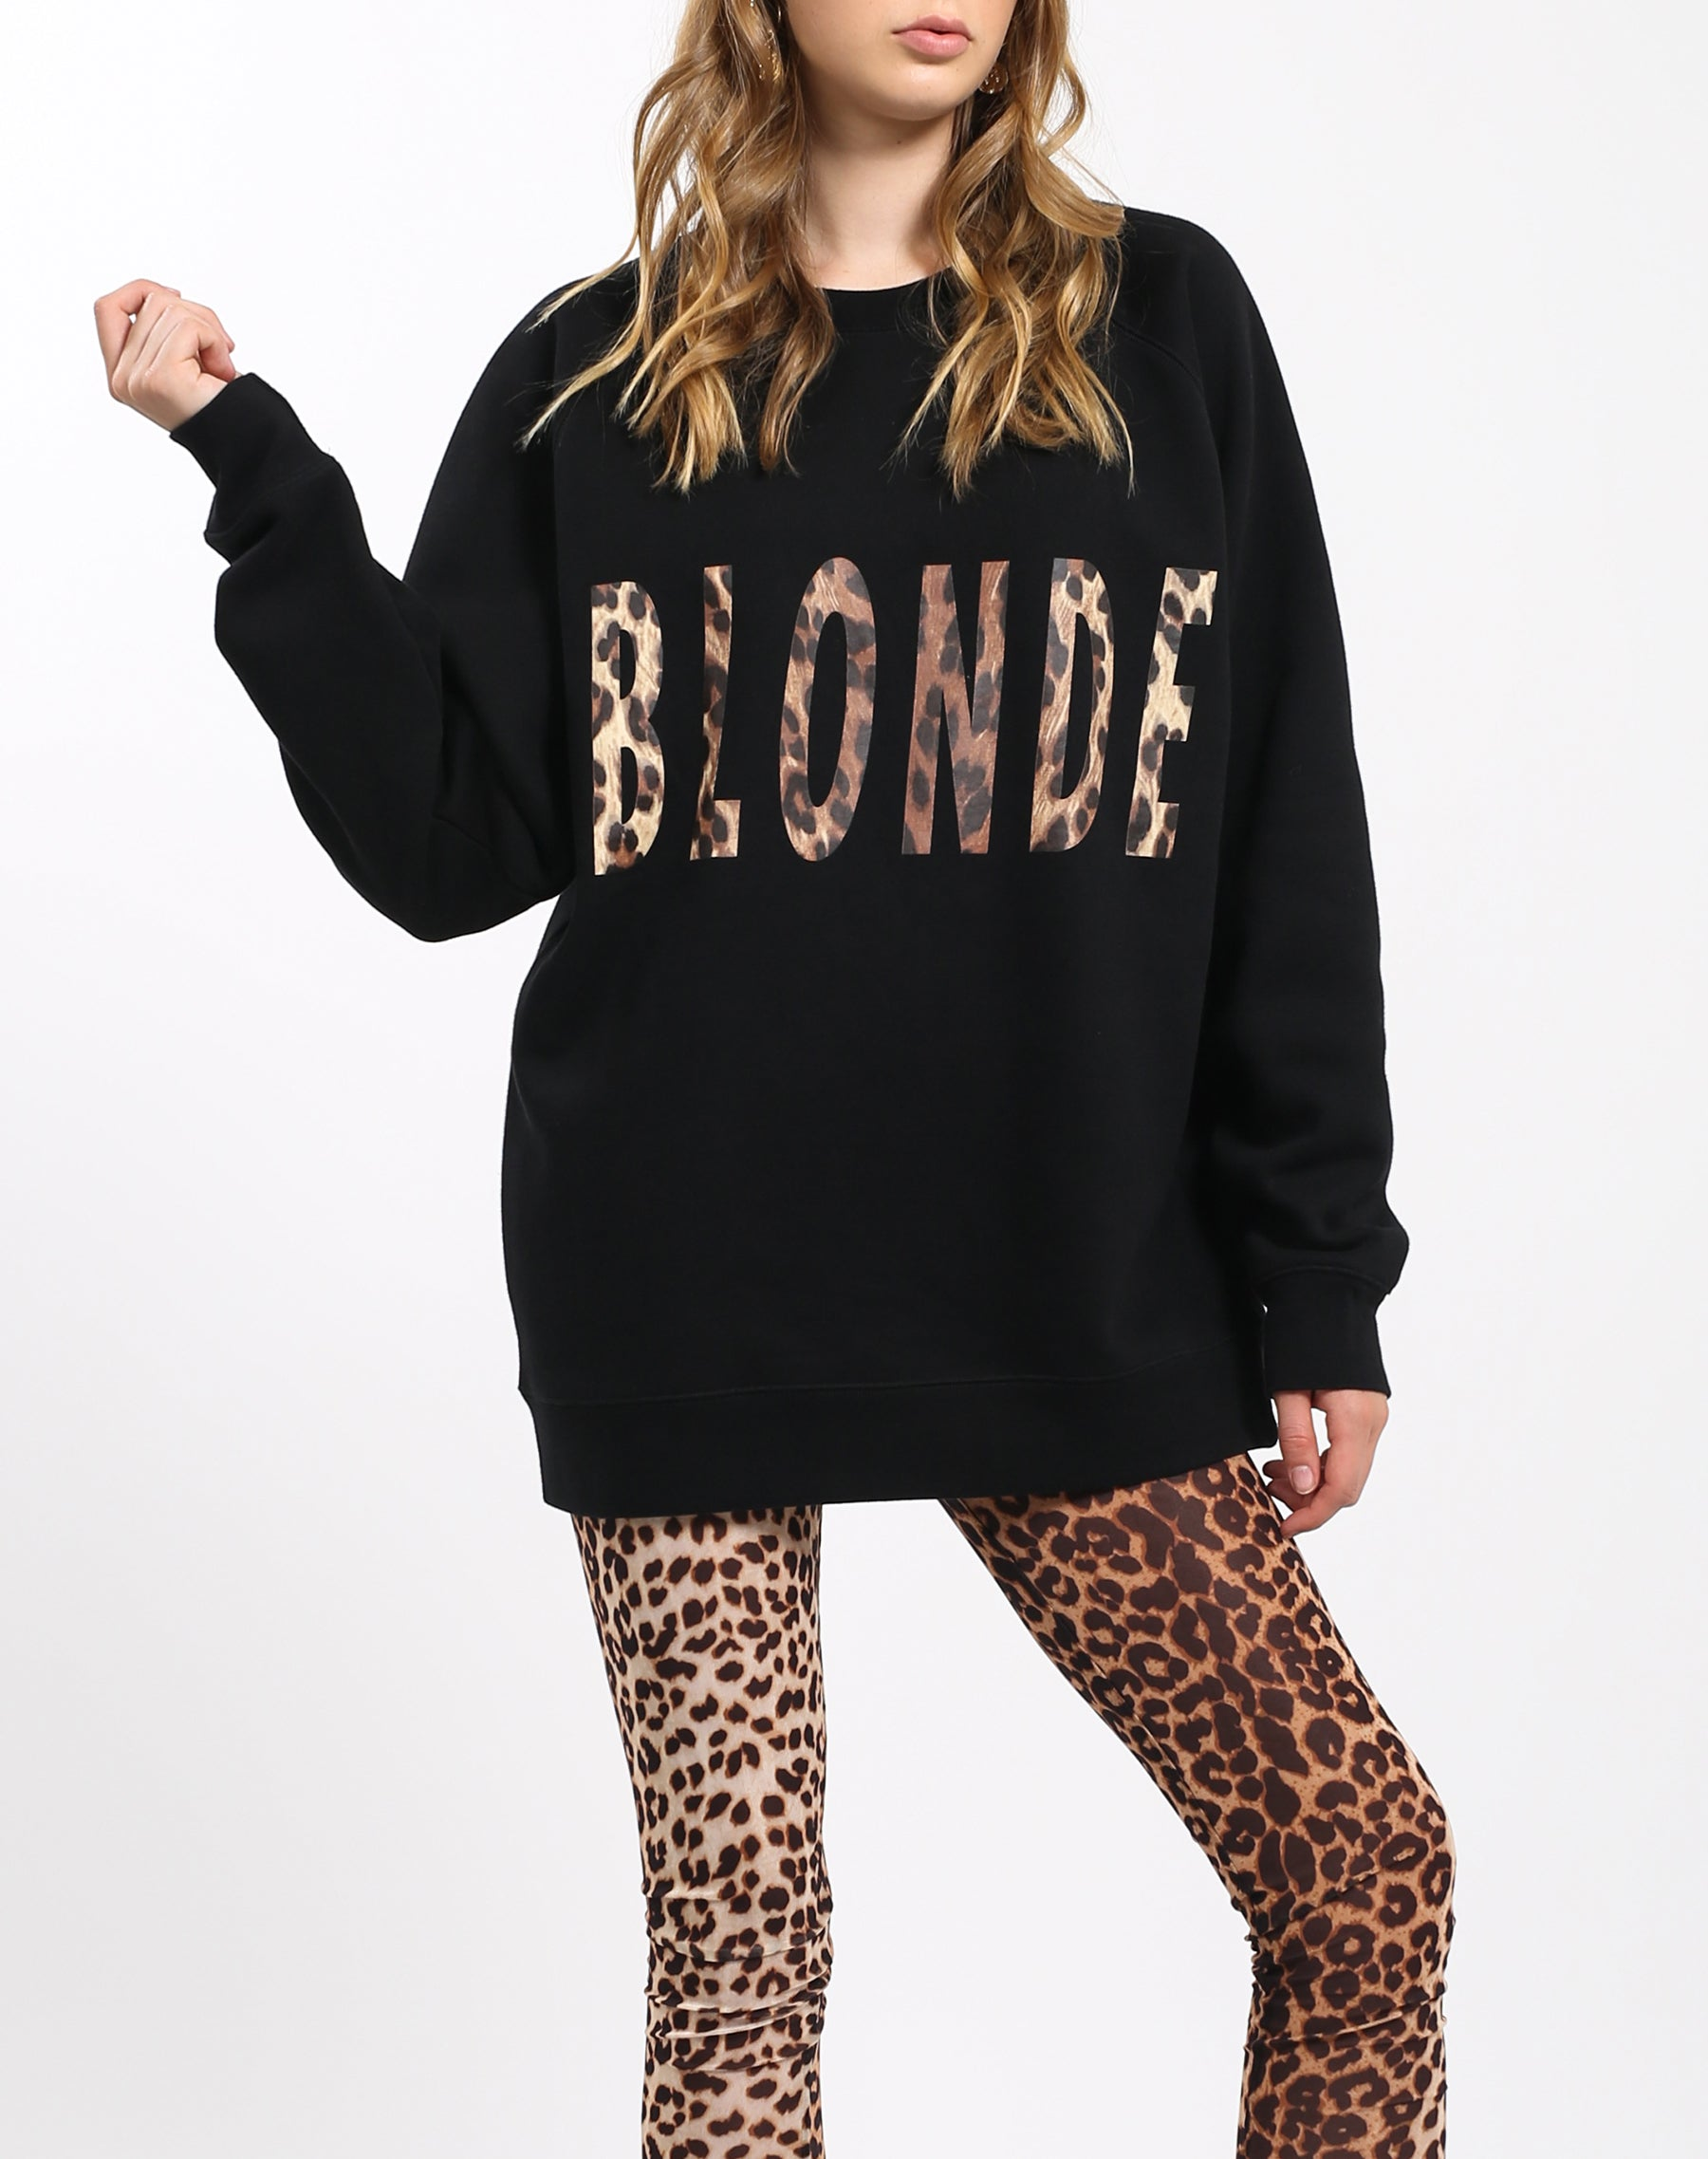 Photo 4 of the Blonde big sister crew neck sweatshirt in leopard by Brunette the Label.